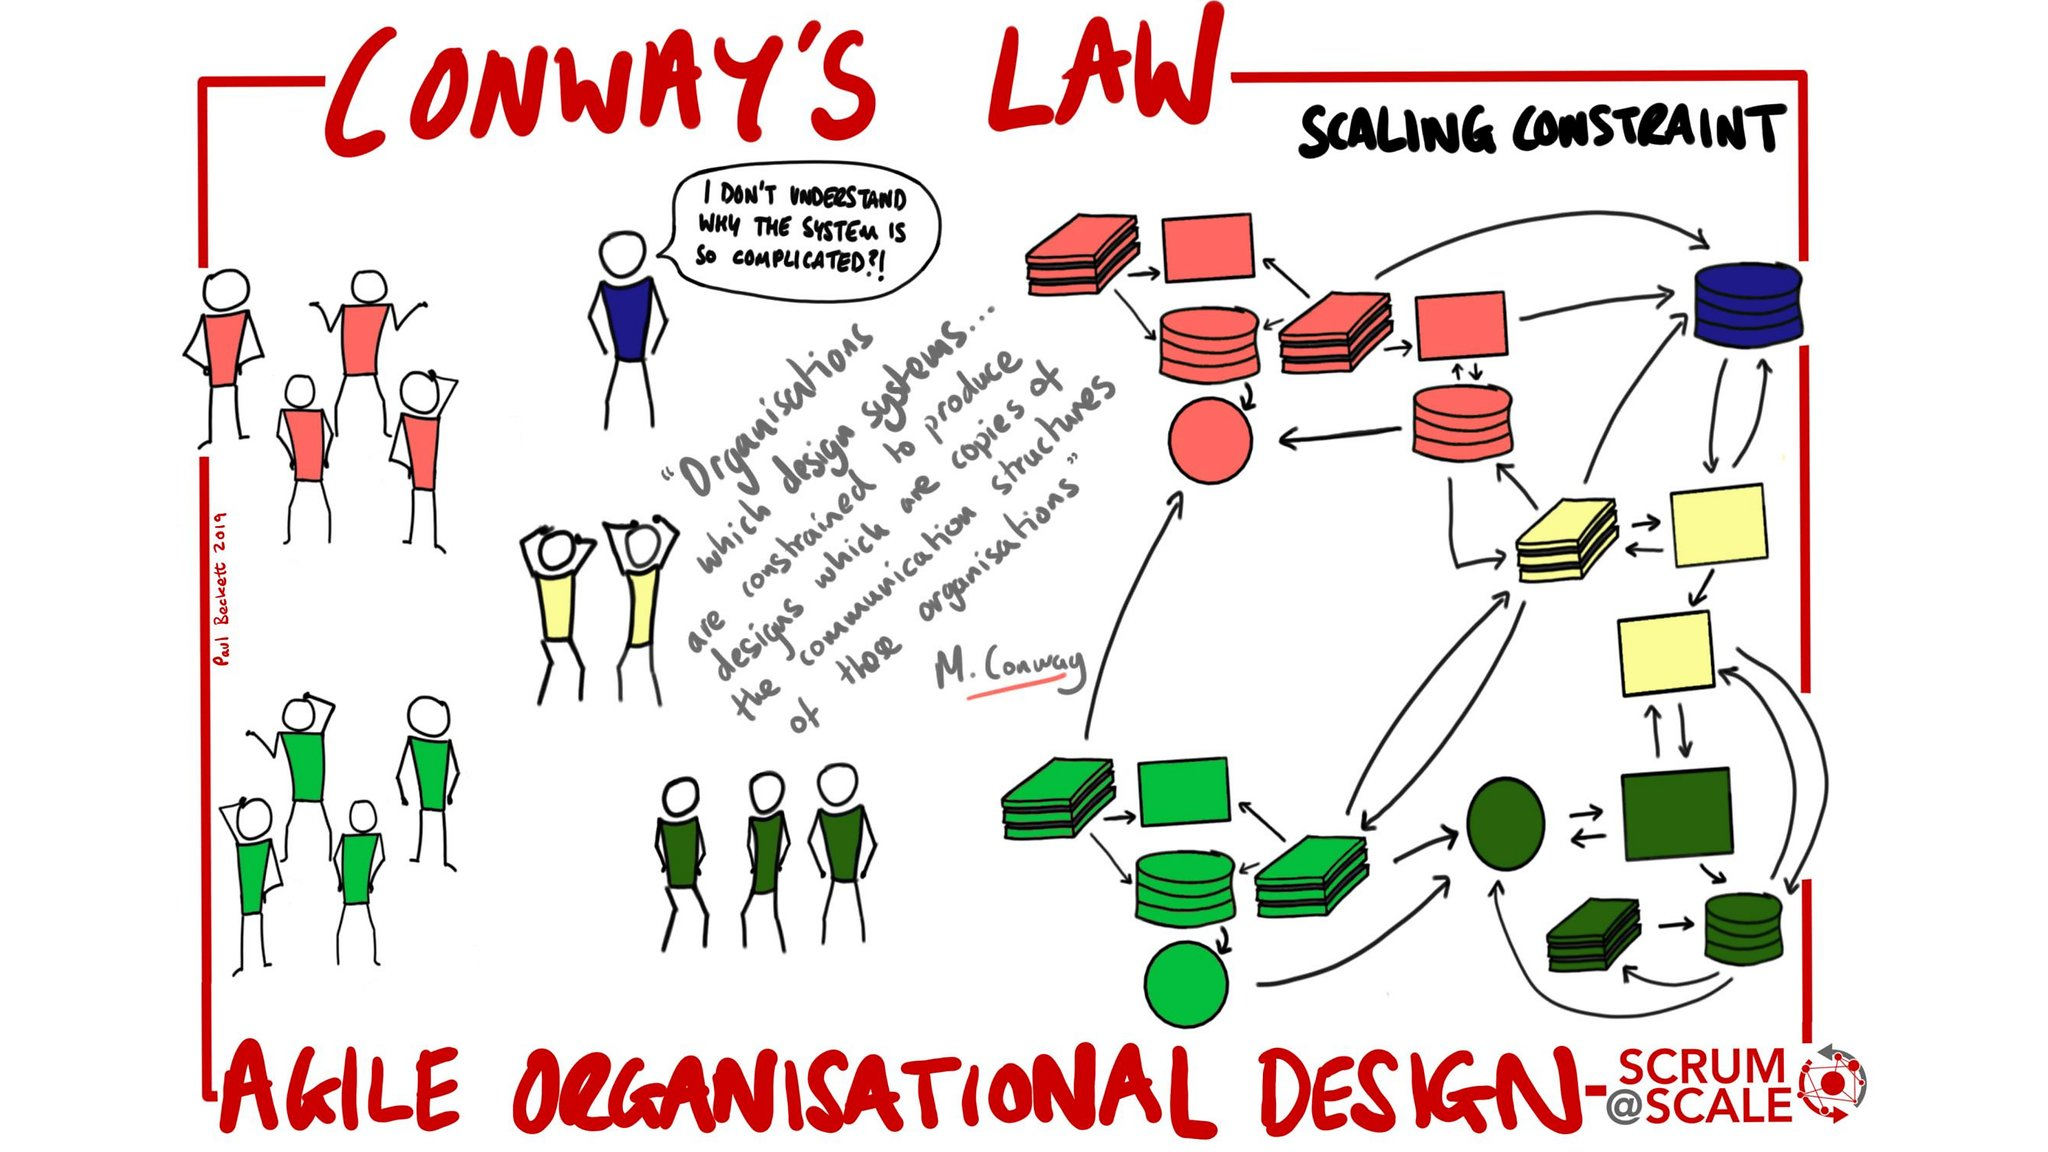 Conway's Law - Agile Organisational Design - Scrum@Scale